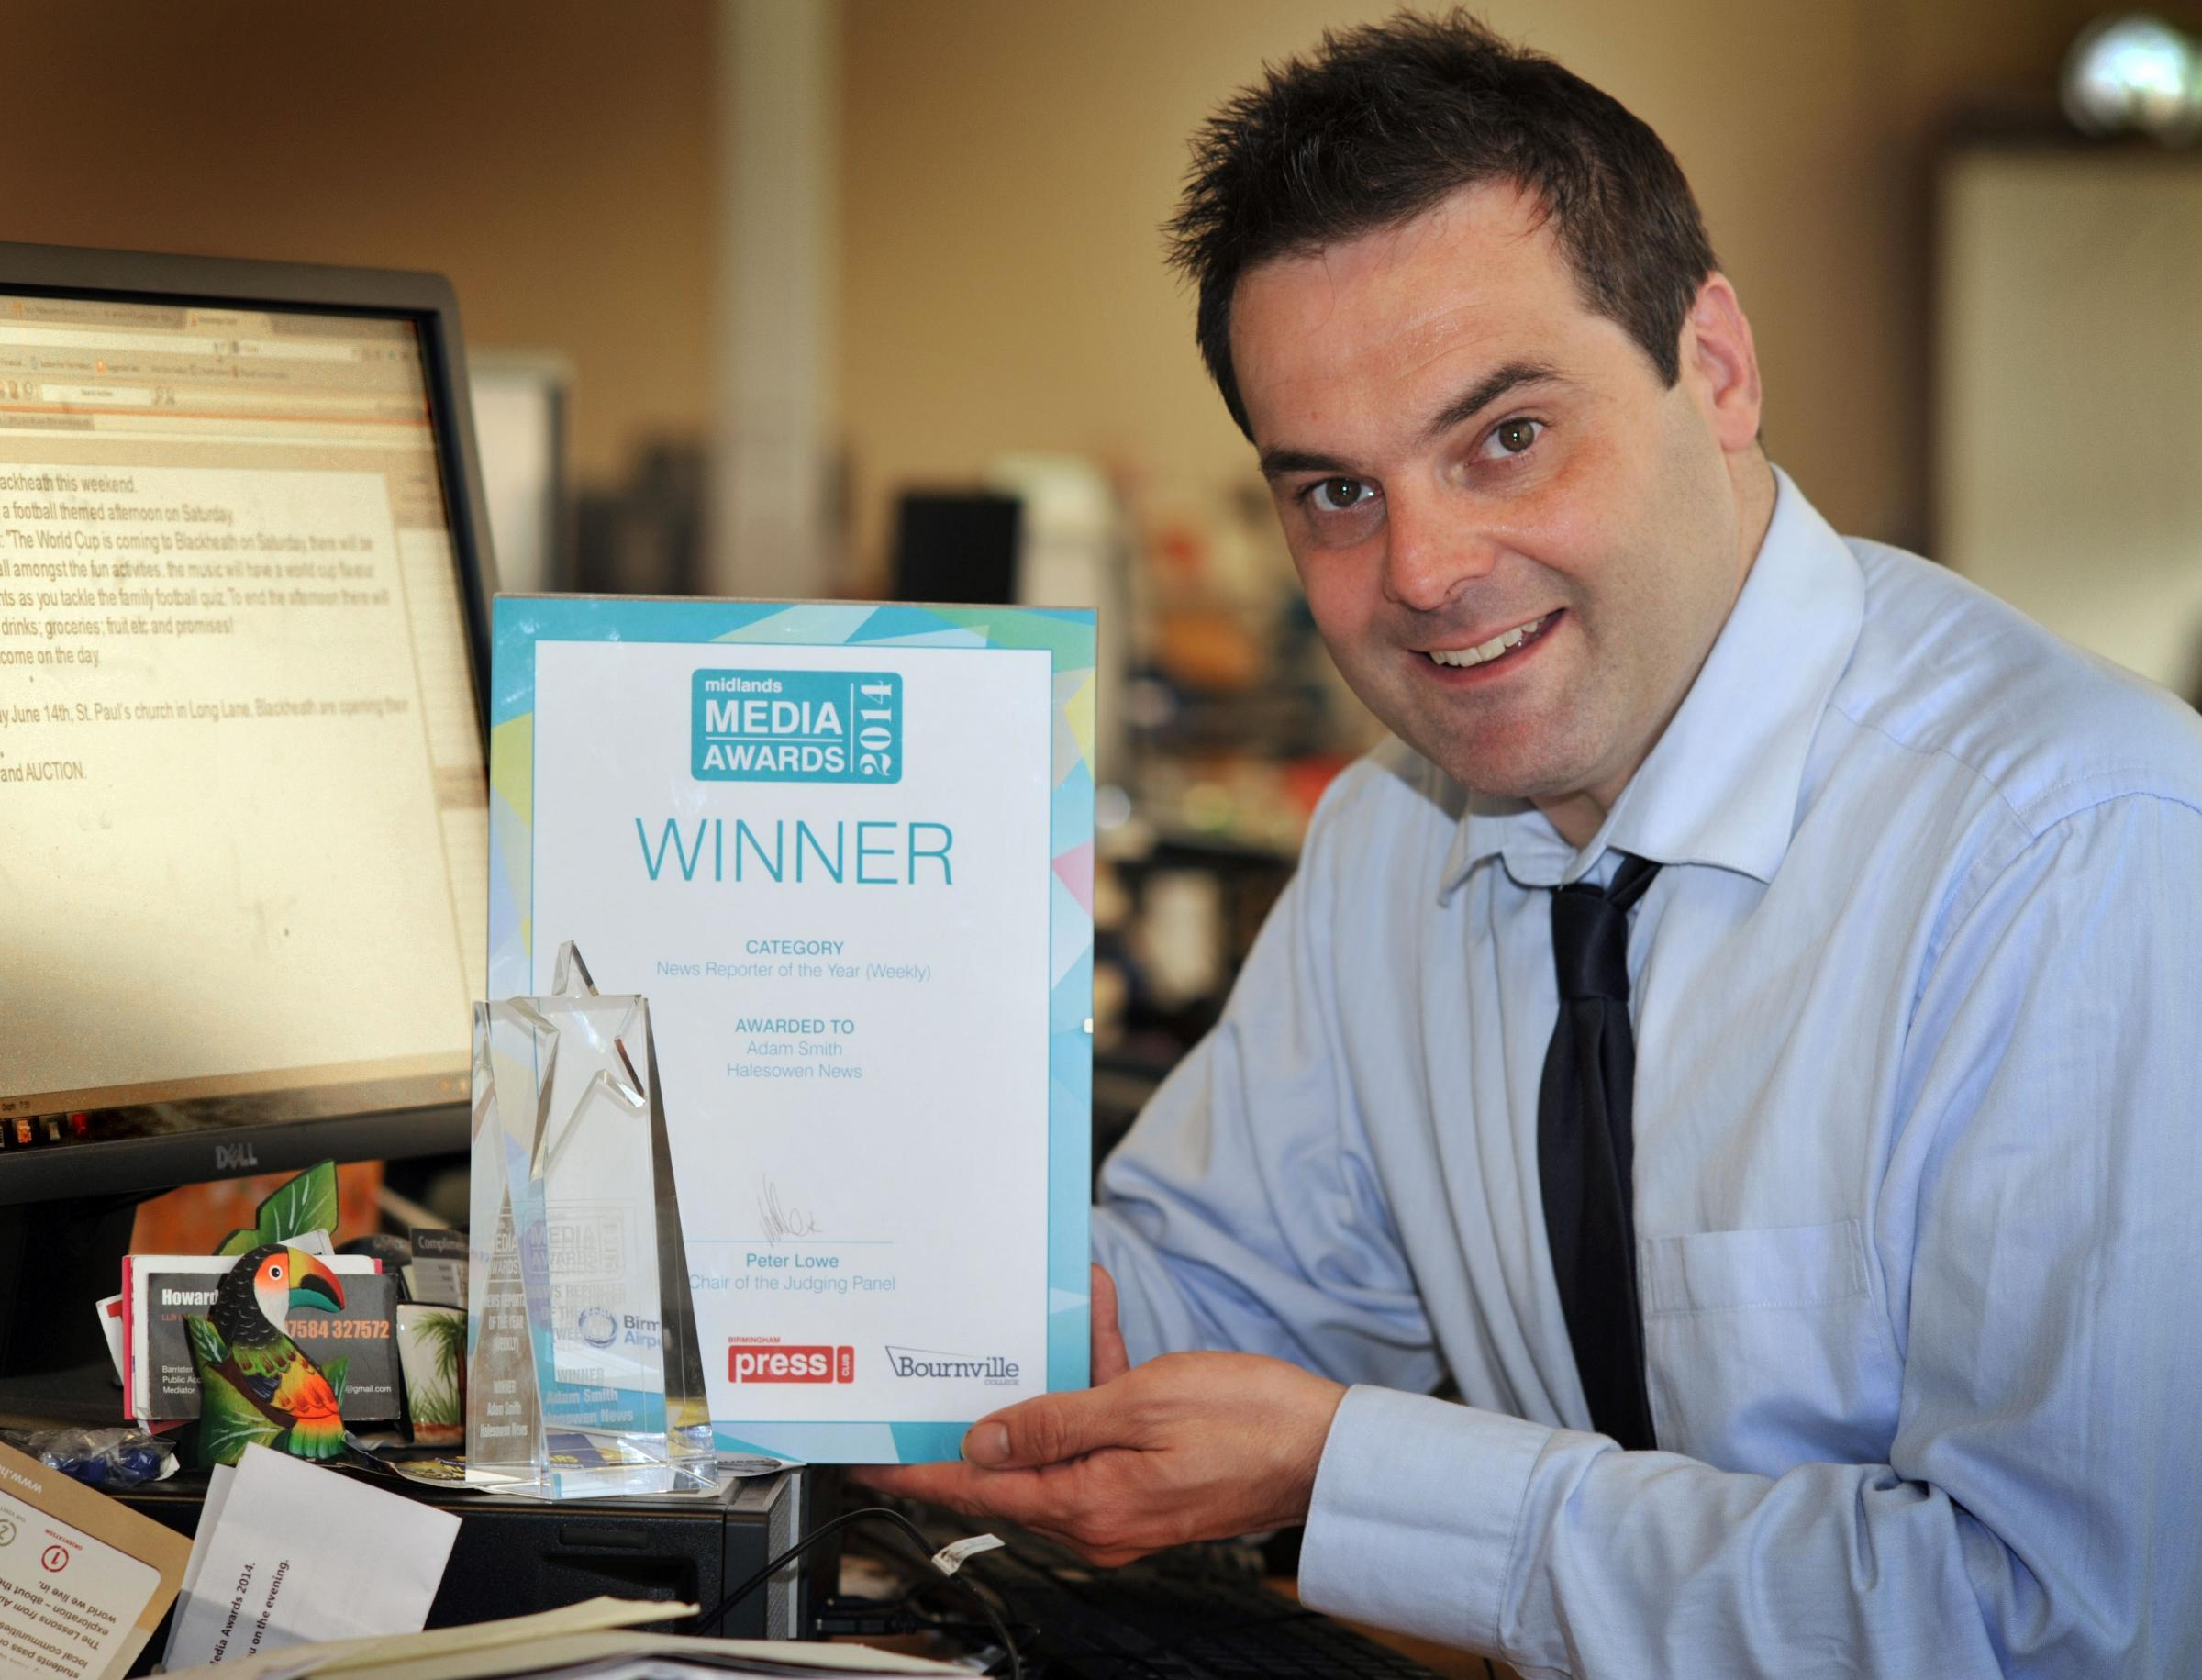 Winner: Midlands Media Awards Weekly Reporter of the Year Adam Smith.